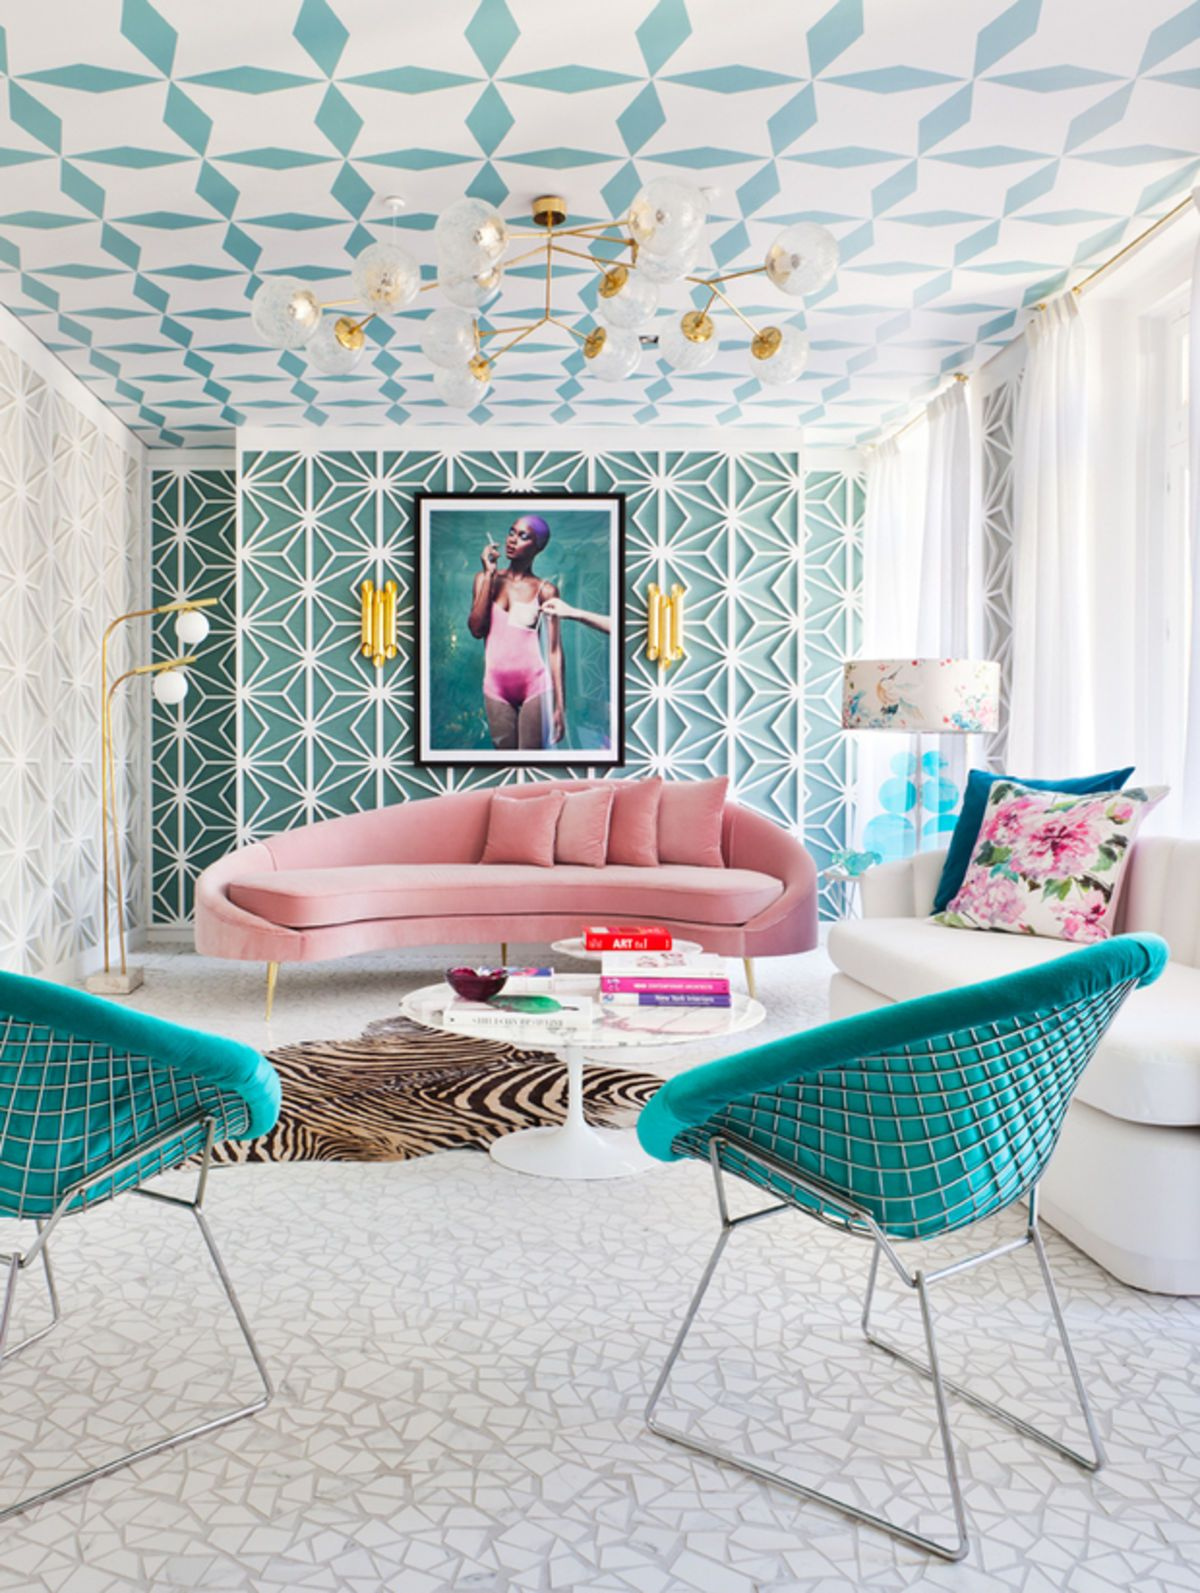 Interior Trends Populuxe Look Of The New Art Deco Style Sampleblog Blue Living Room Decor Living Room Decor Colors Wall Decor Living Room,Best Places To Travel In California With Dogs